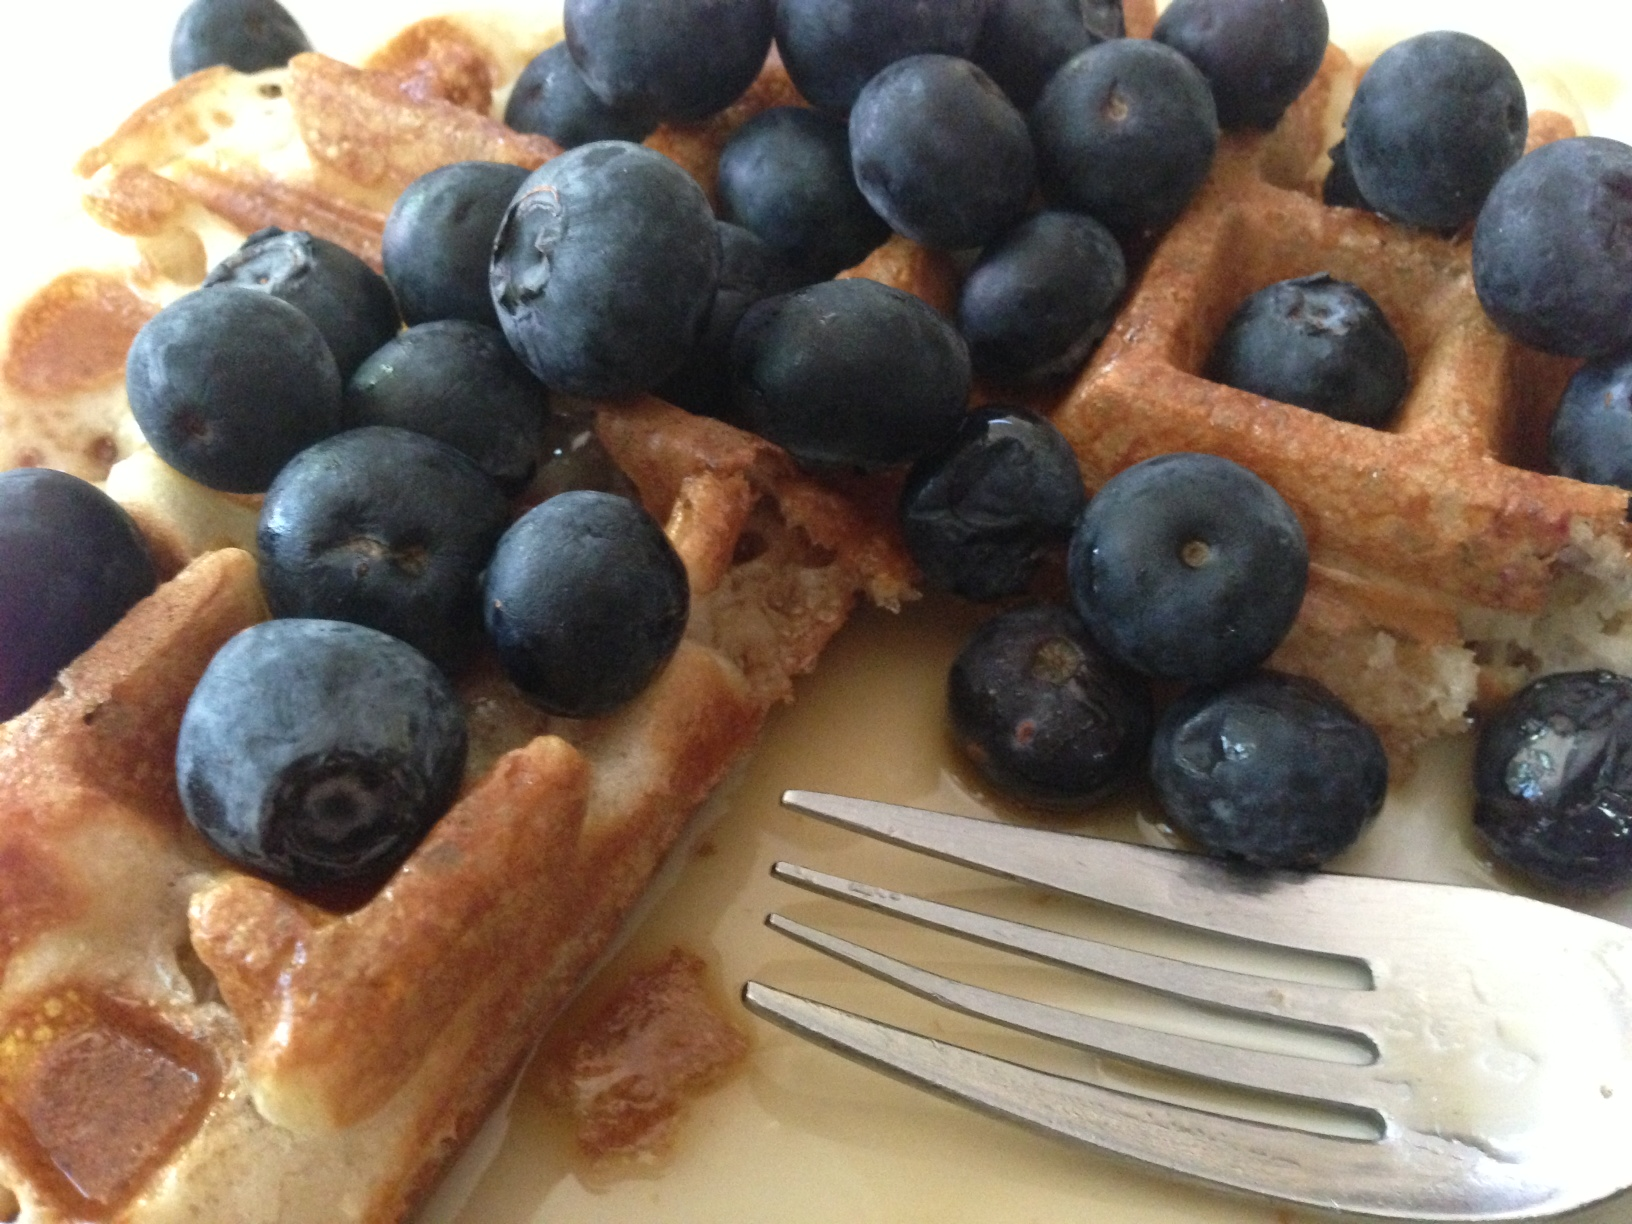 Home made waffle with fresh blueberries